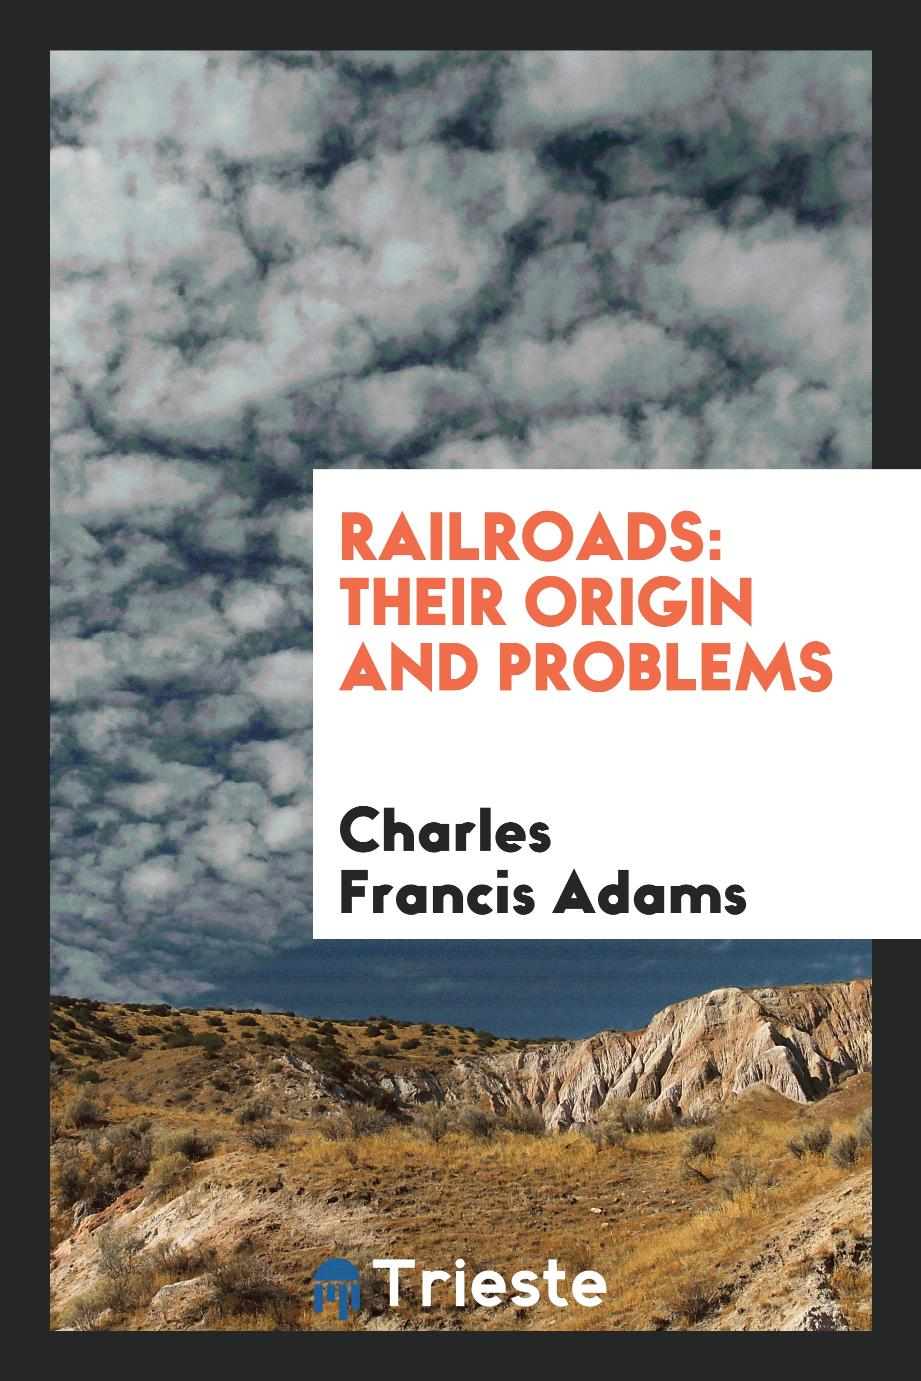 Railroads: their origin and problems